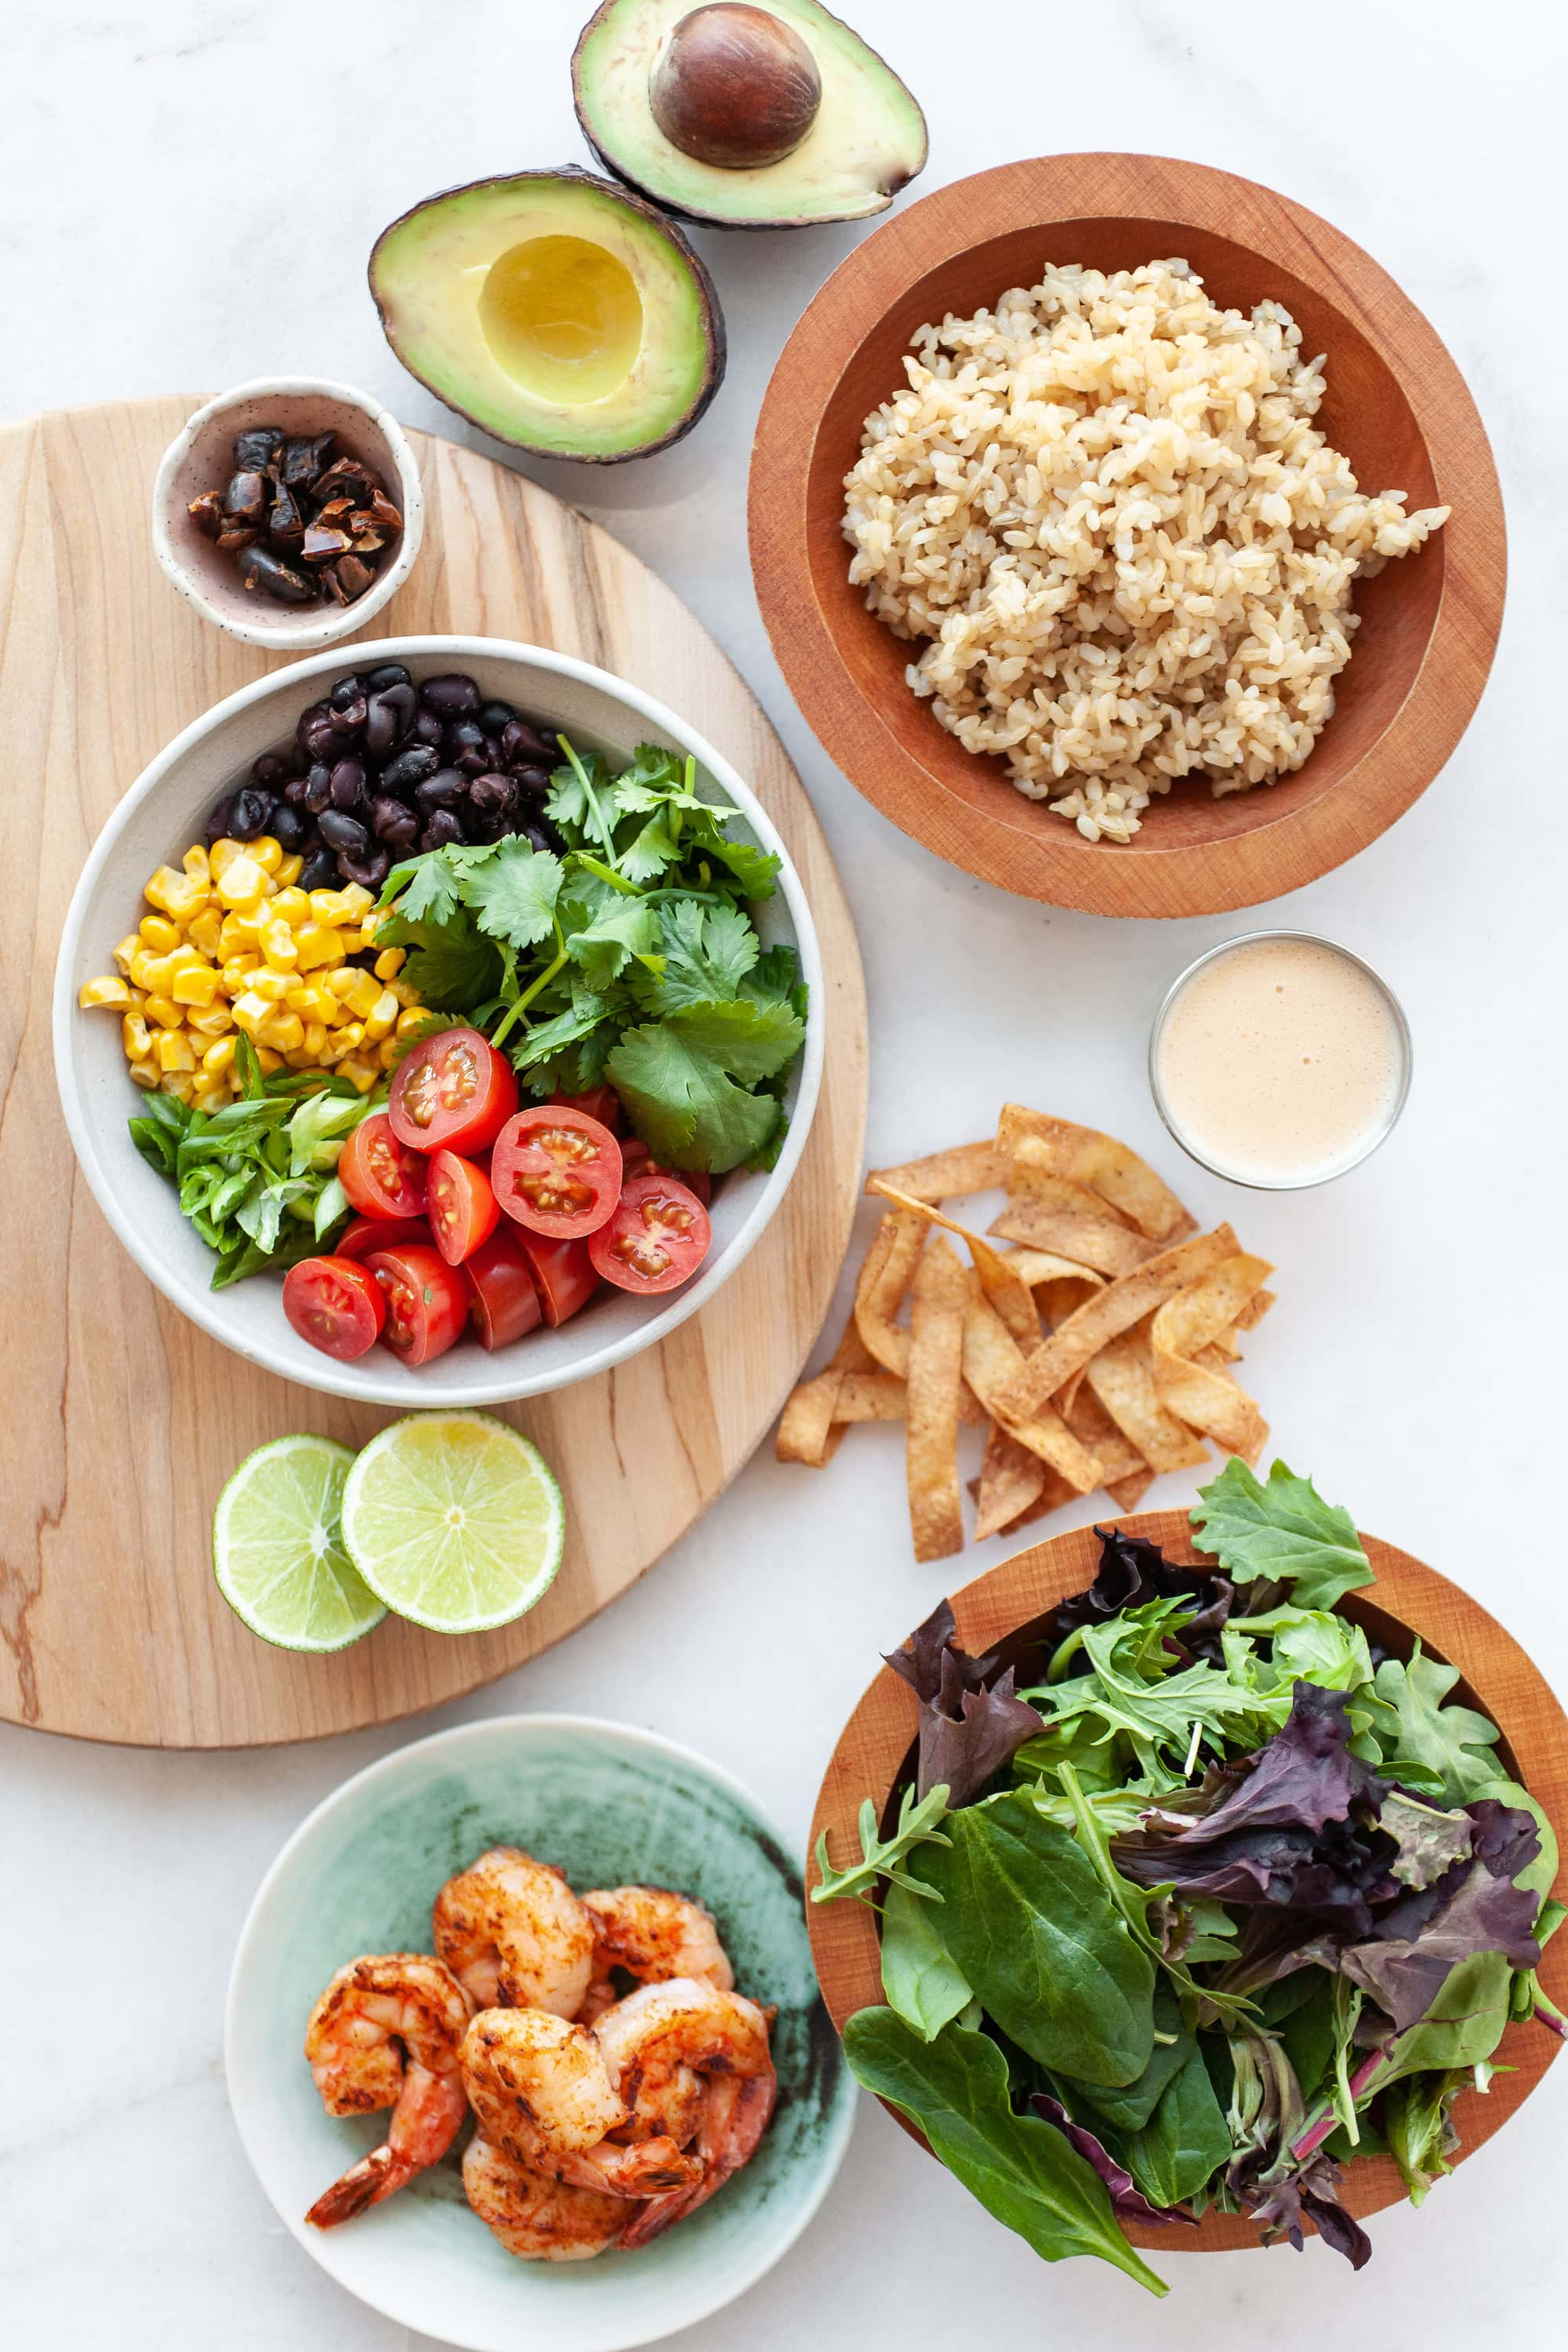 Overhead view of ingredients for Healthy Southwest Salad